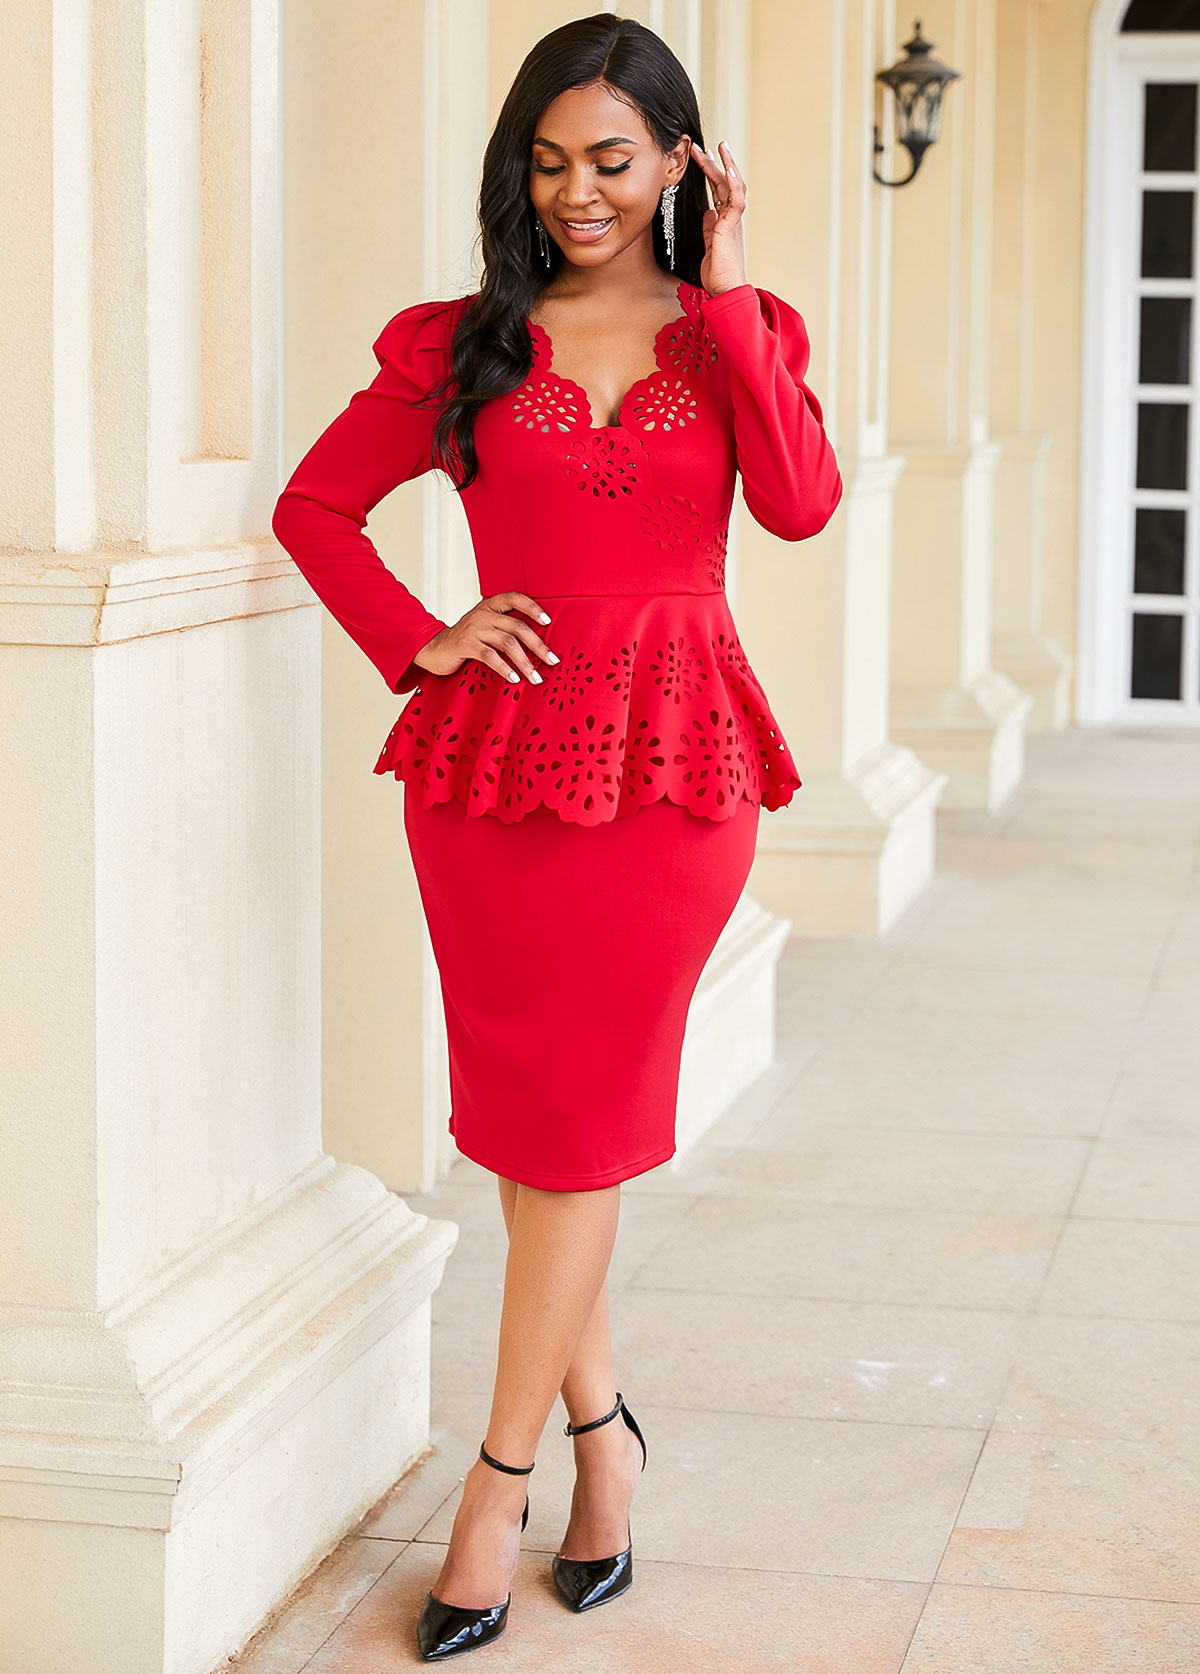 ROTITA Pierced Long Sleeve Peplum Waist Dress